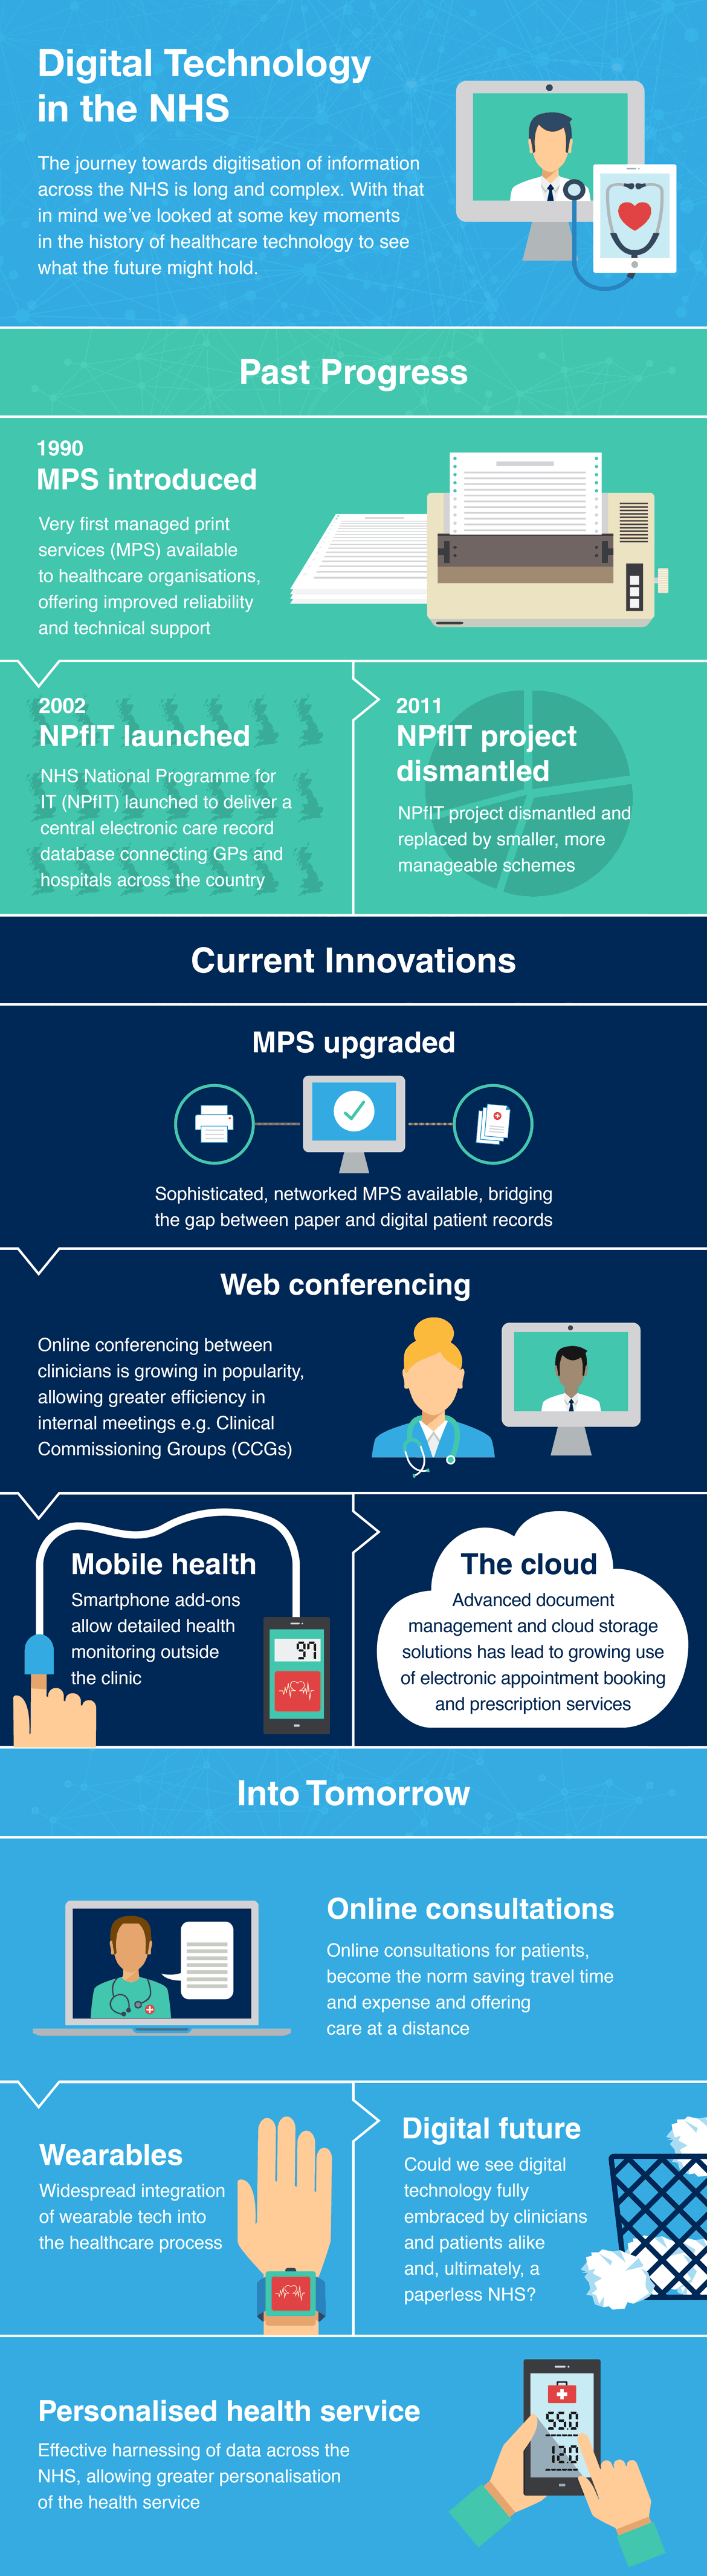 Brother healthcare infographic charting the progress of the NHS